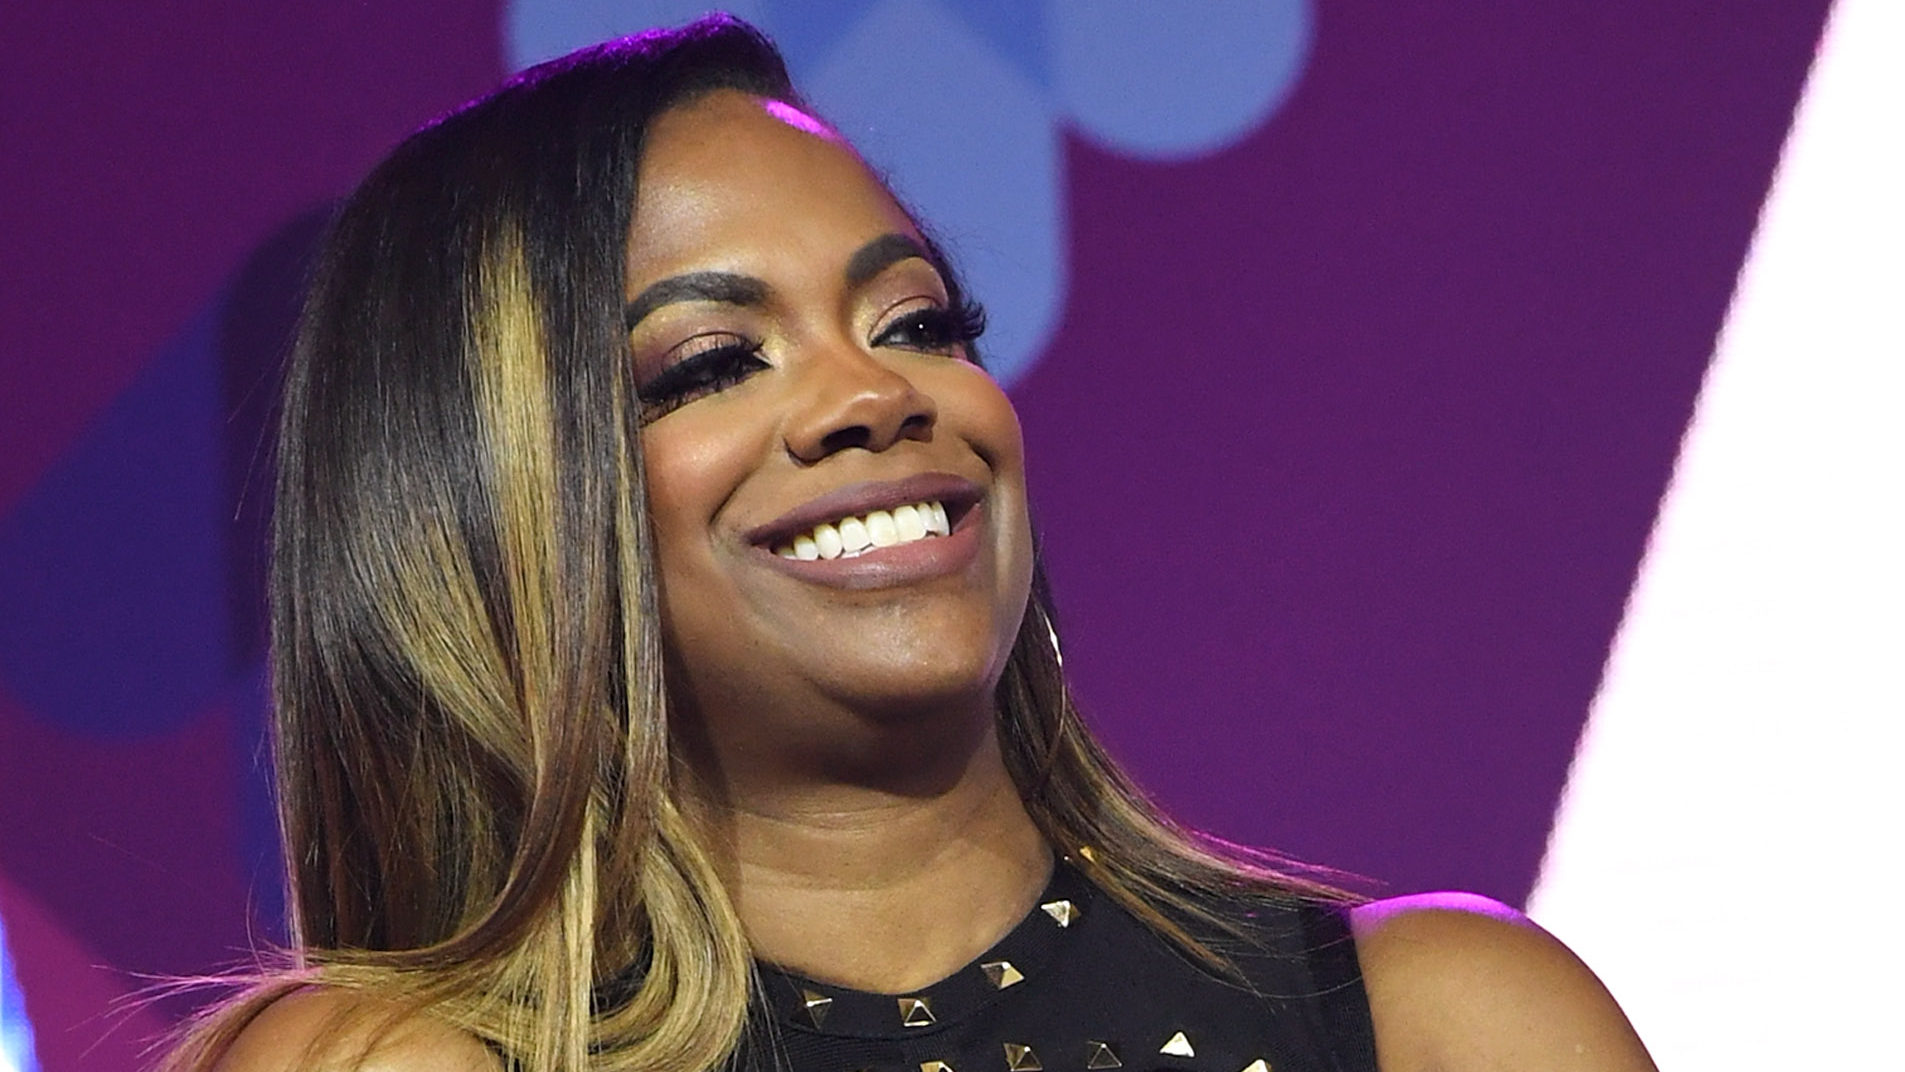 """""""kandi-burruss-proudly-announces-her-fans-that-missy-elliott-came-to-the-dungeon-show-and-showed-the-crew-lots-of-love"""""""